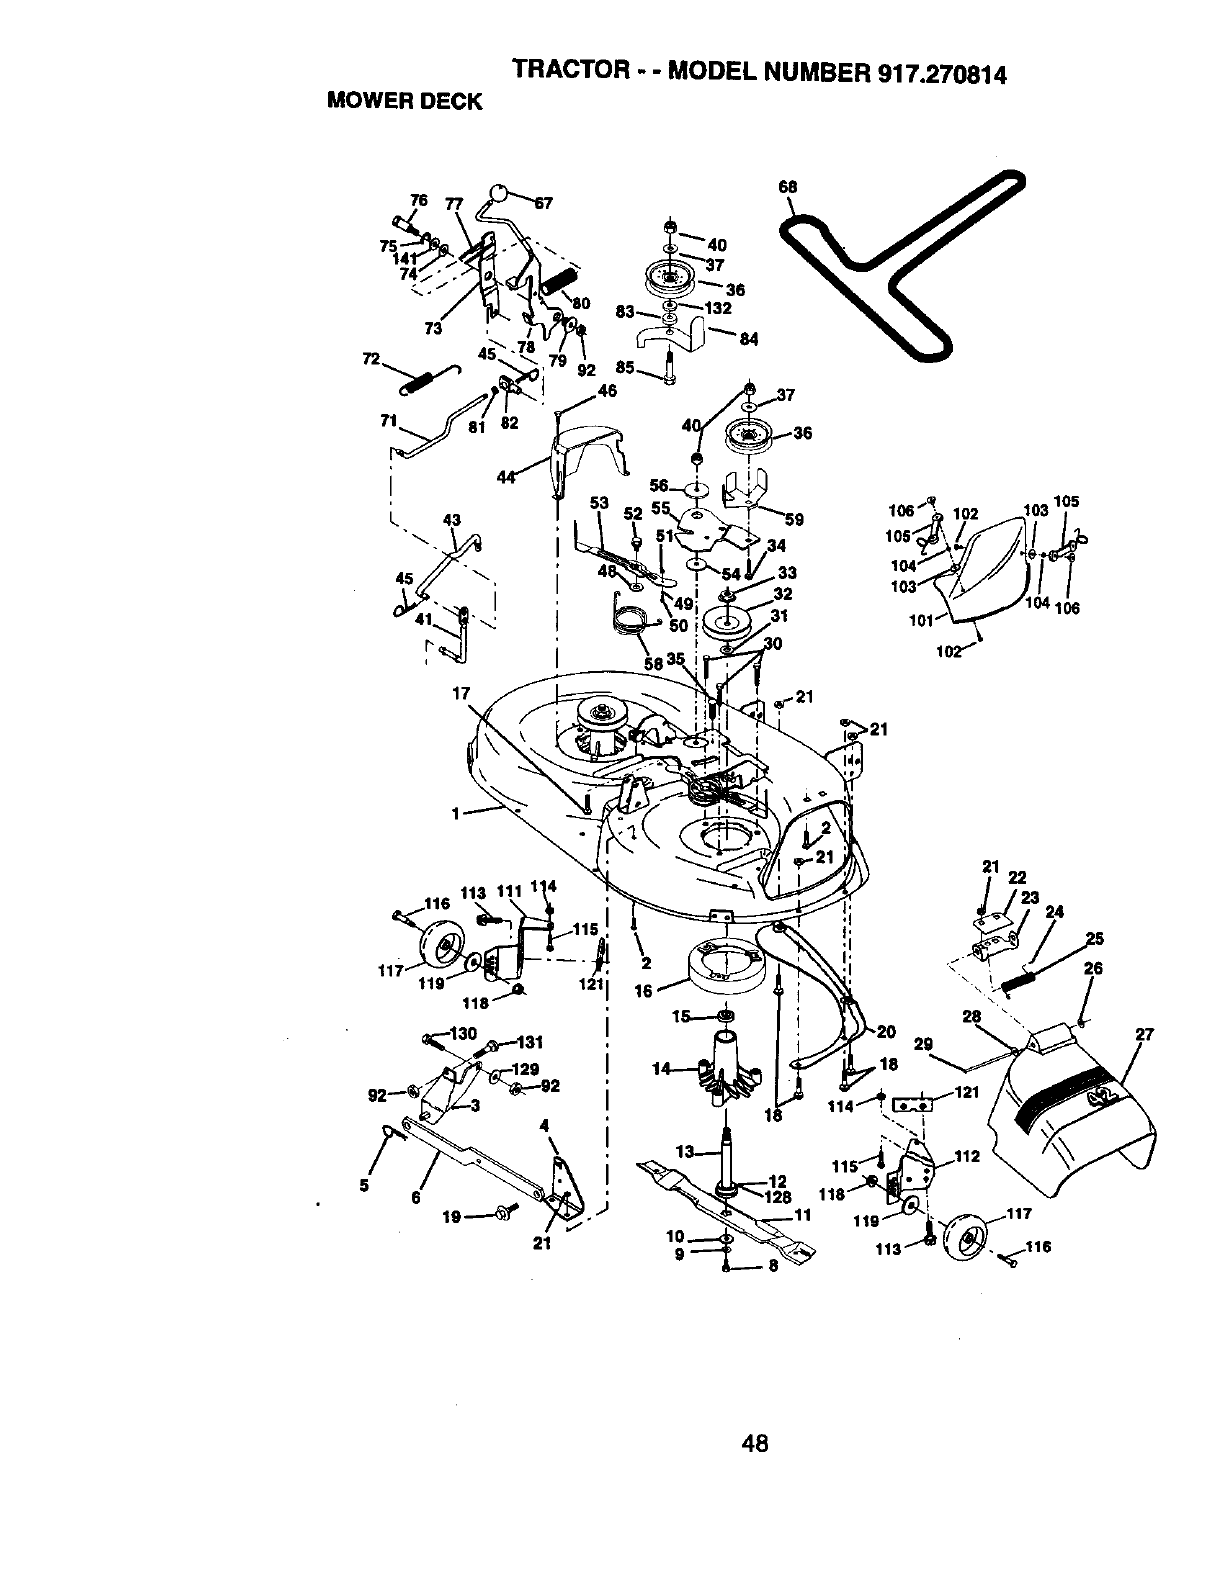 Page 48 of Craftsman Lawn Mower 917.270814 User Guide